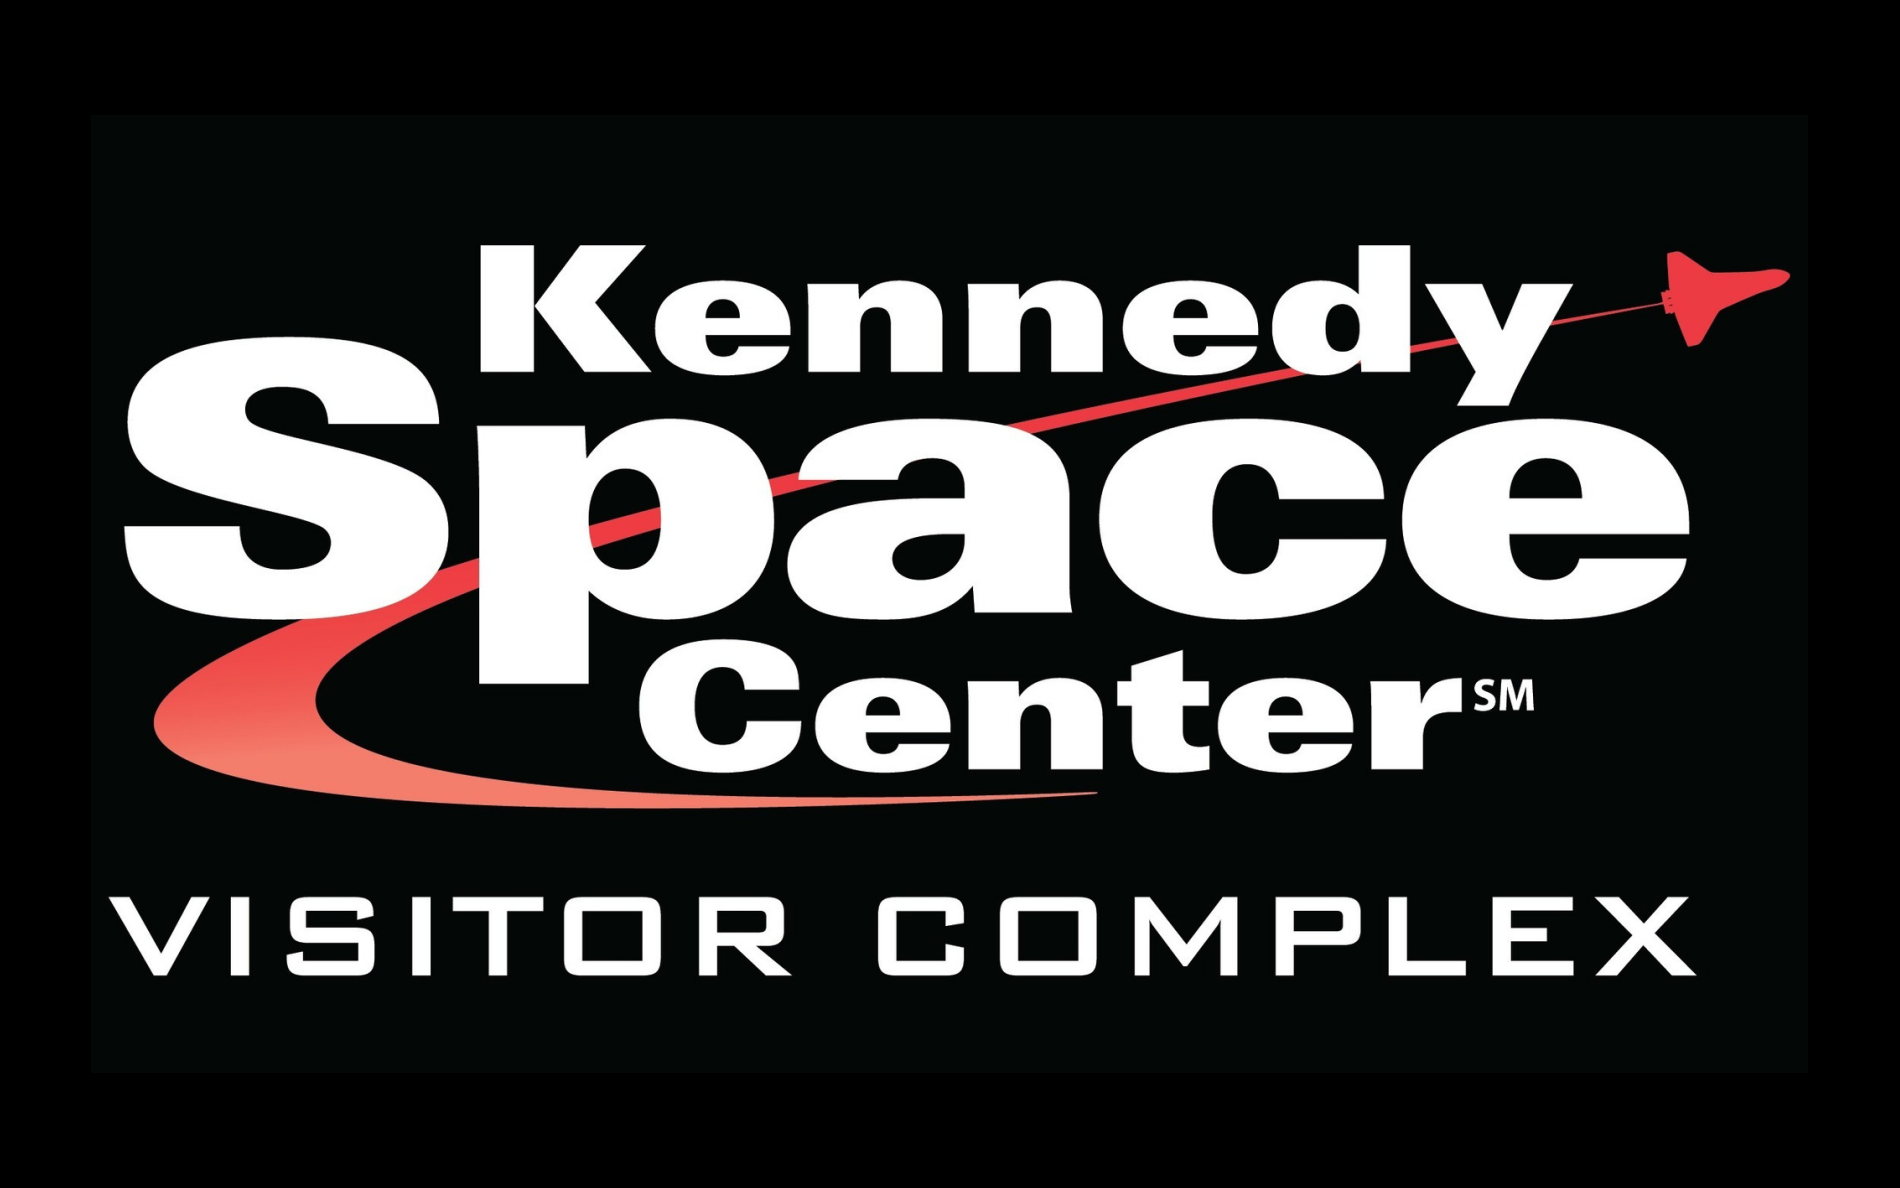 Kennedy space center 2021